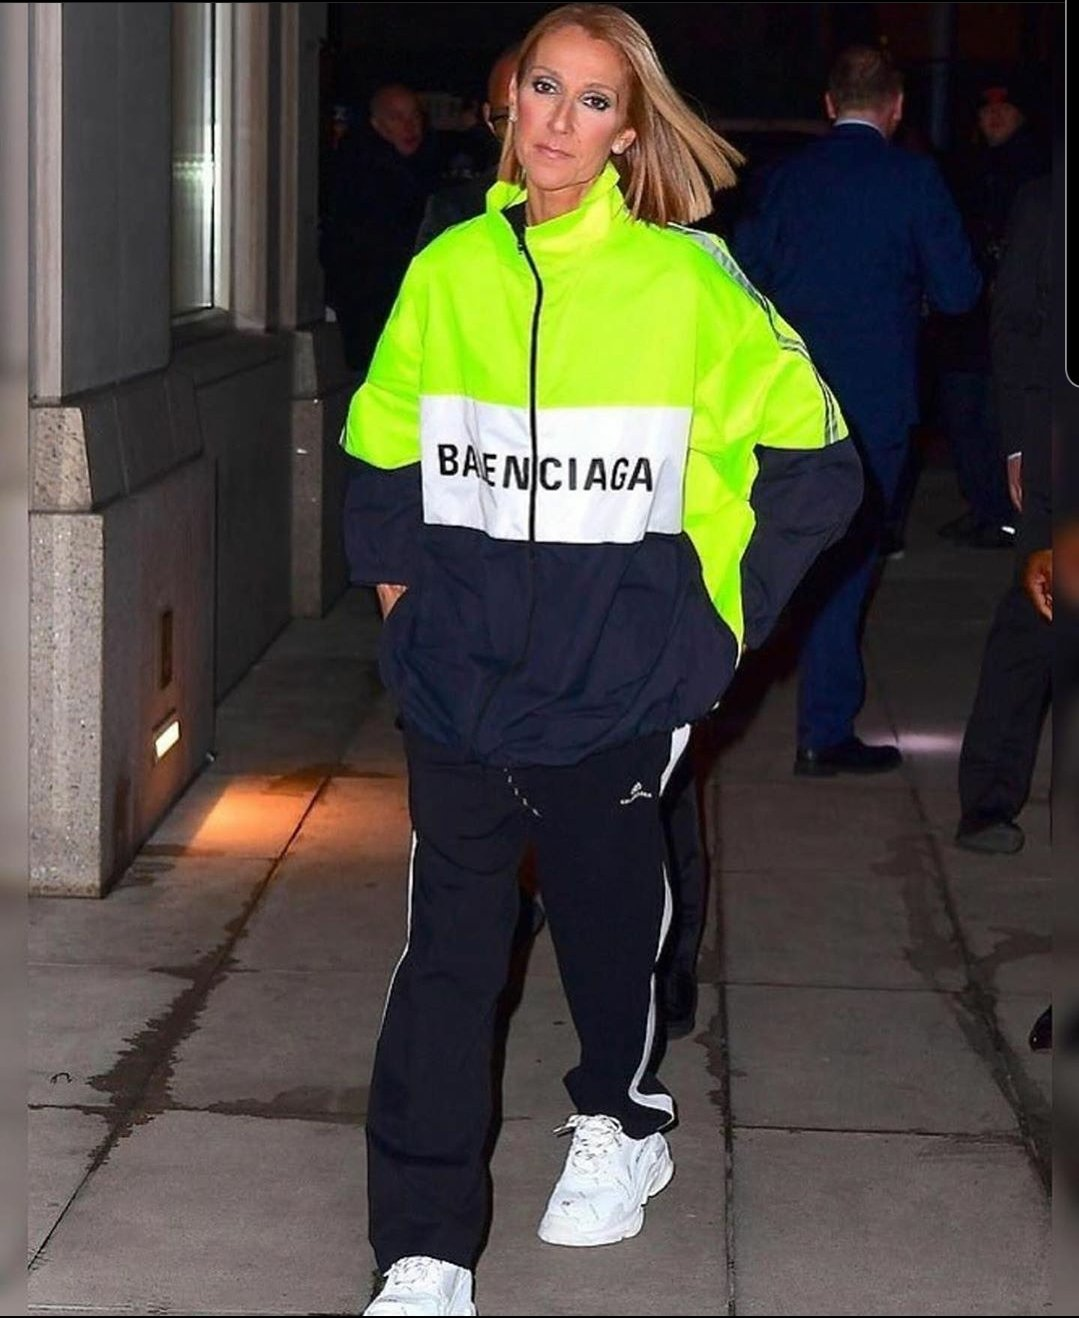 Celine Dion proves she's one of the cool kids as she rocks neon Balenciaga streetwear after her concert in NYC